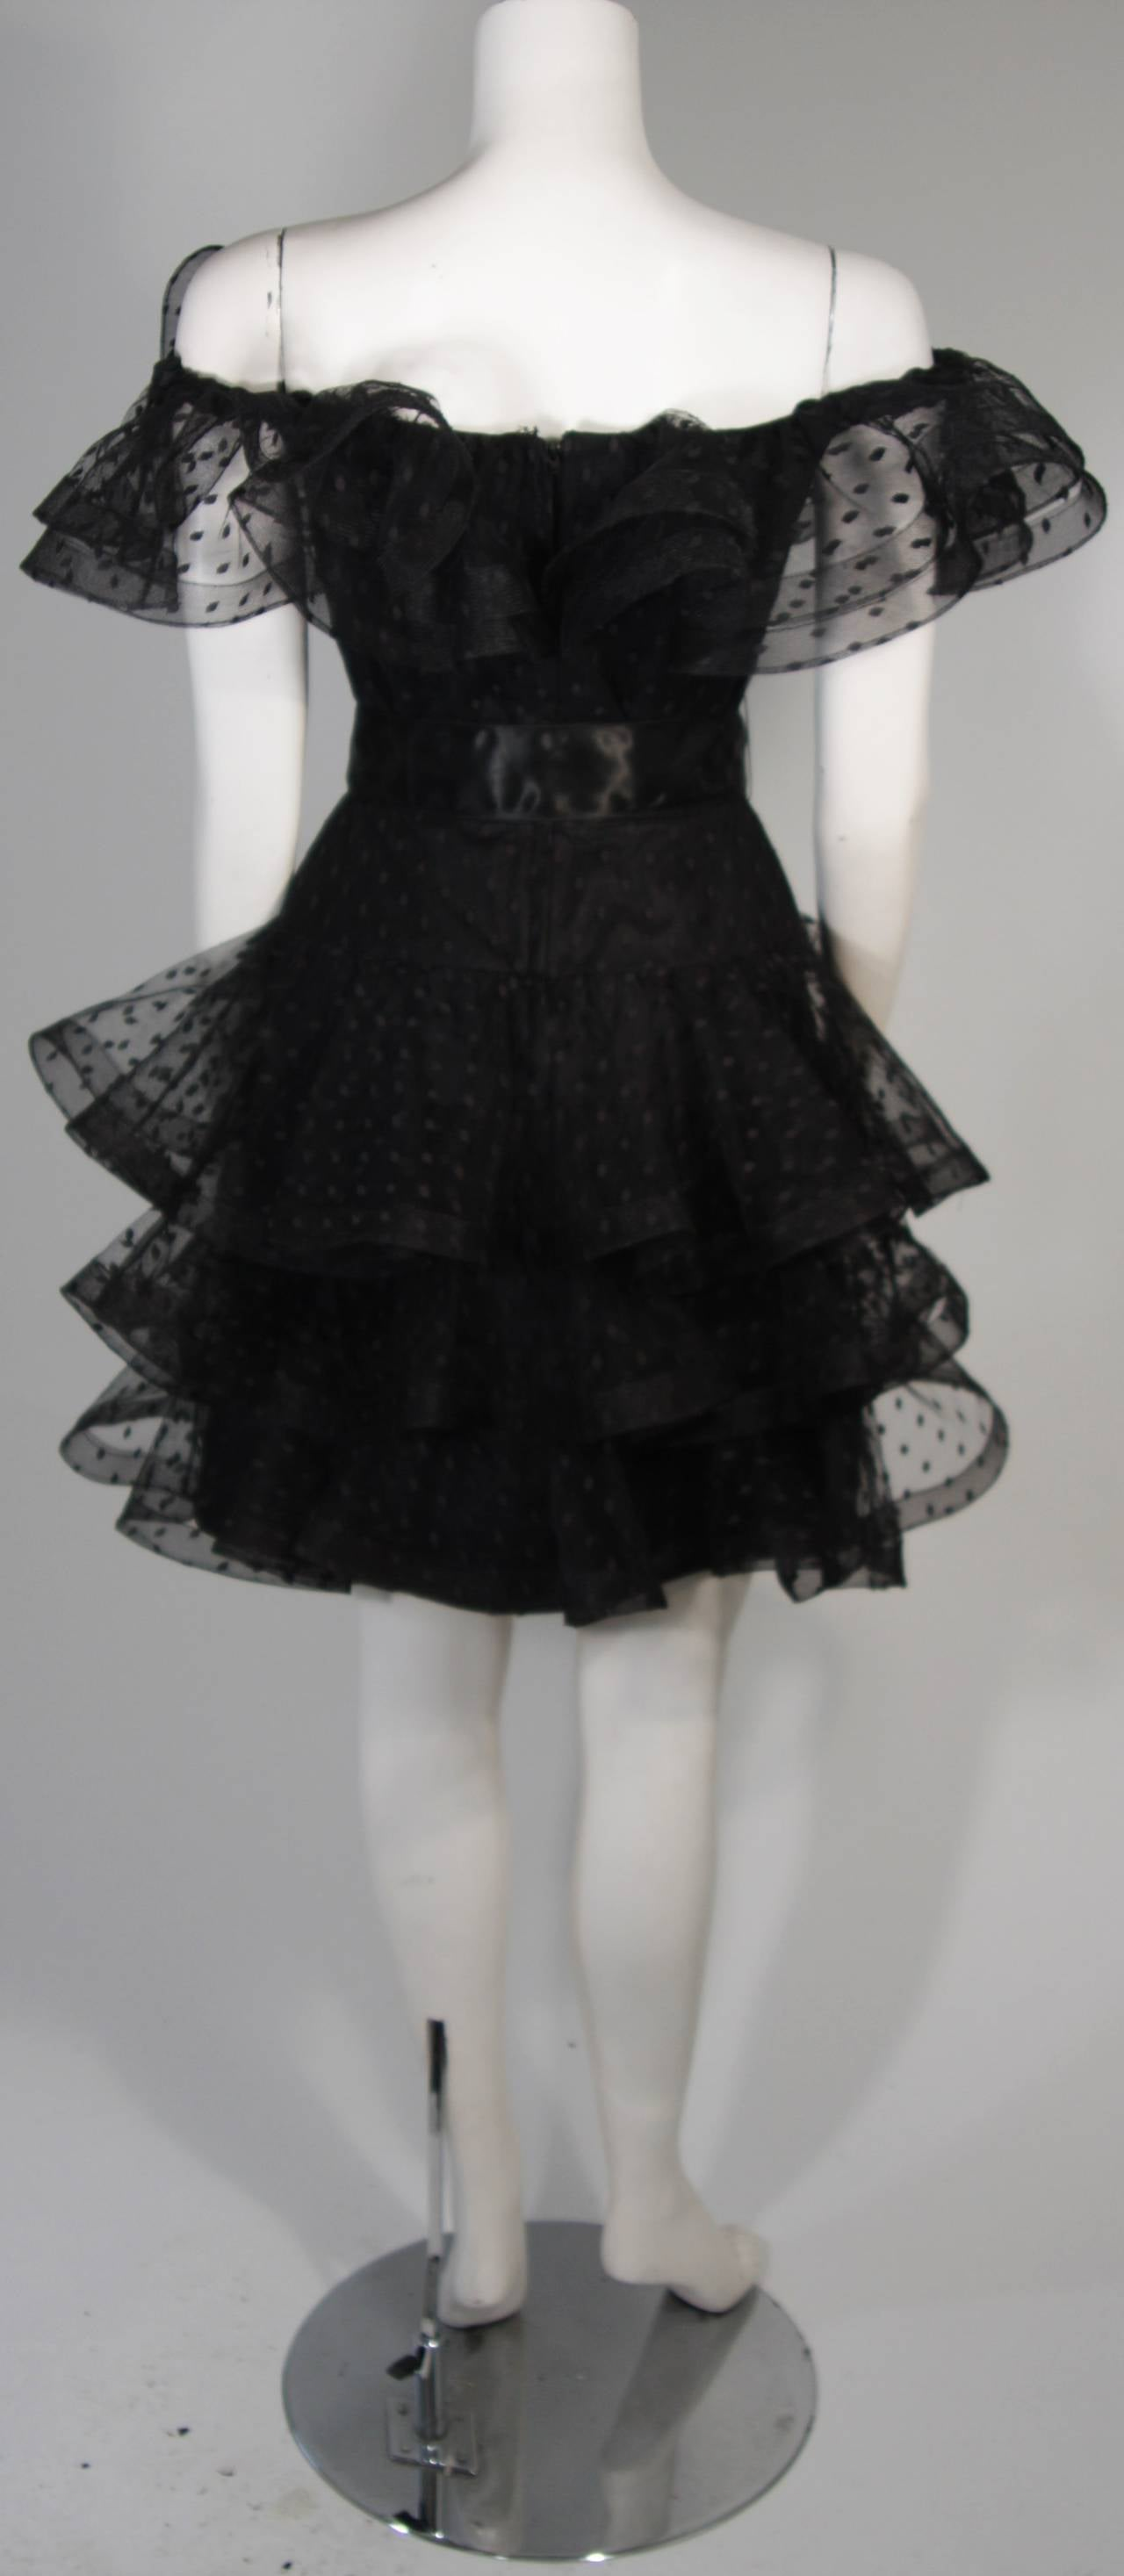 Victor Costa Black Cocktail Dress with Ruffled Horsehair Hemlines Size 2 9